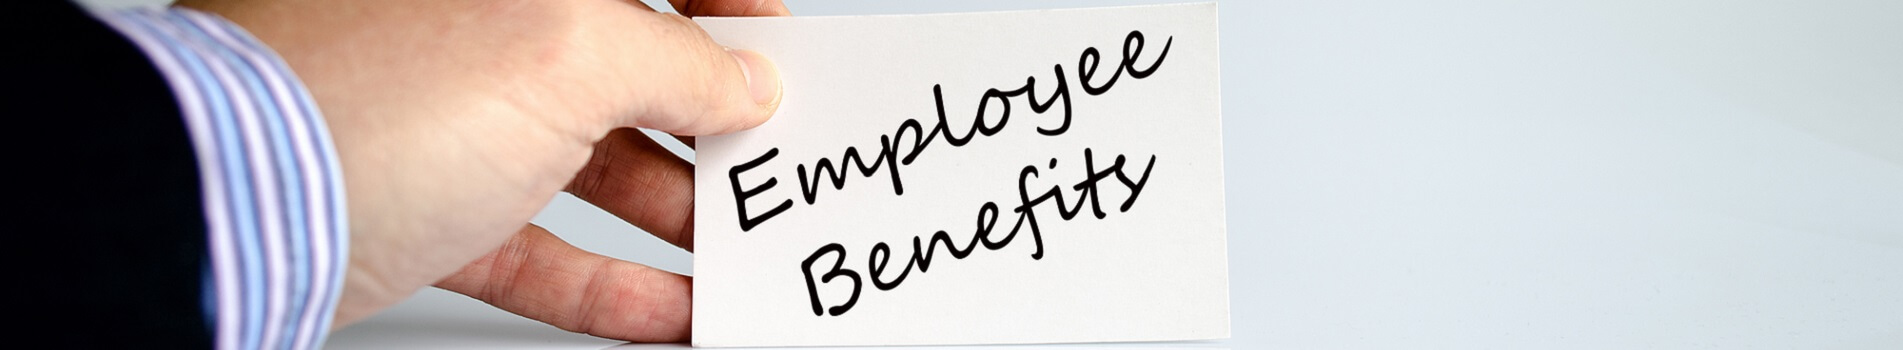 employee benefits administration